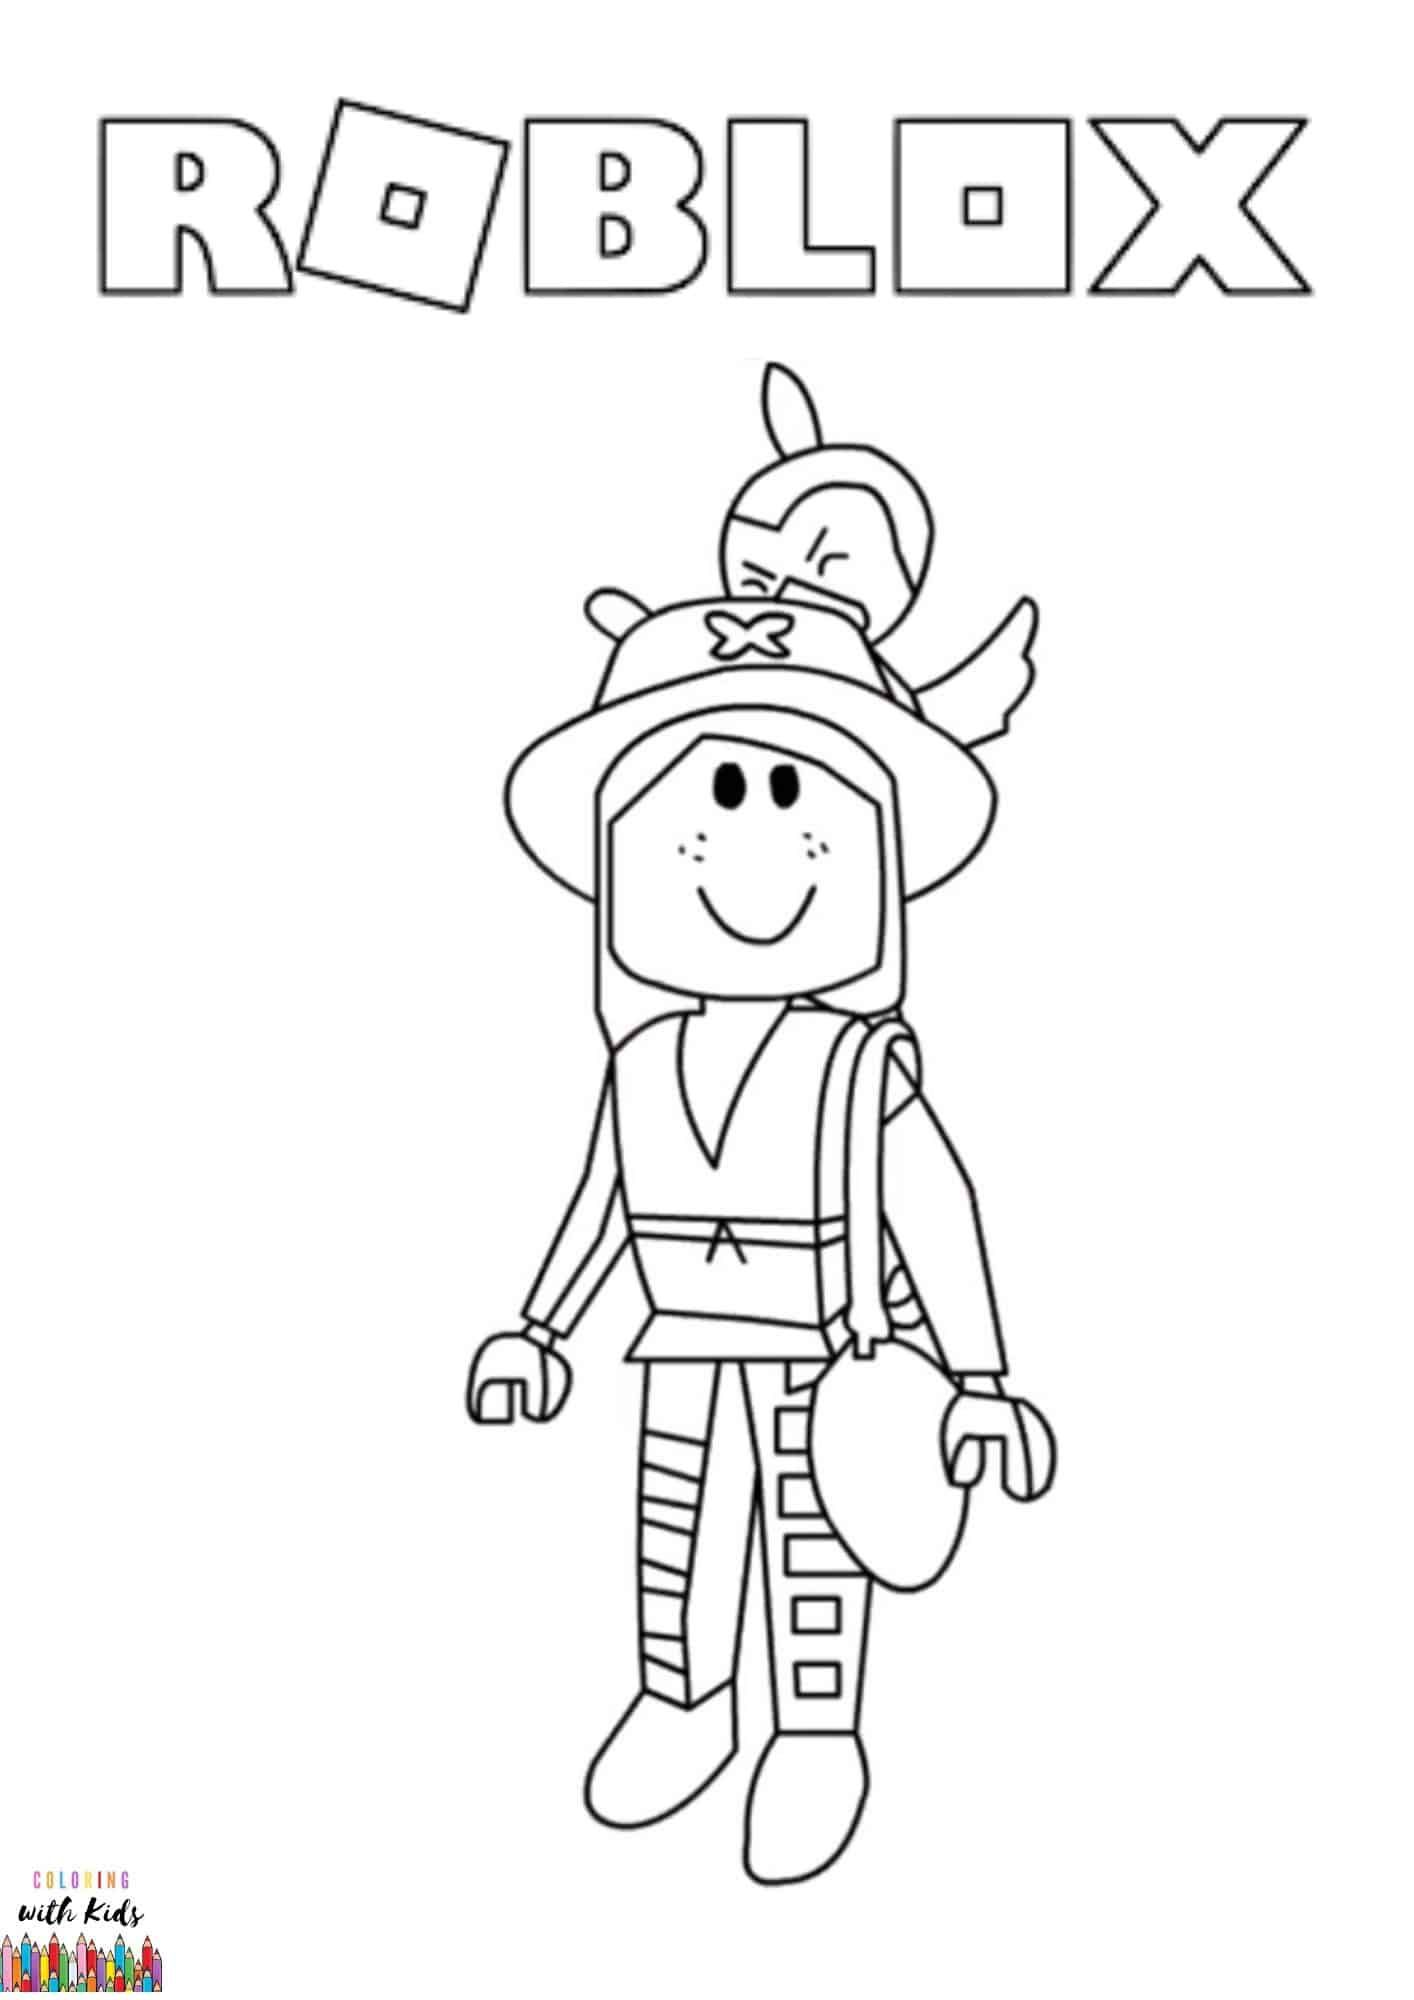 Roblox Category Coloringwithkids Com Cute Coloring Pages Coloring Pages Witch Coloring Pages